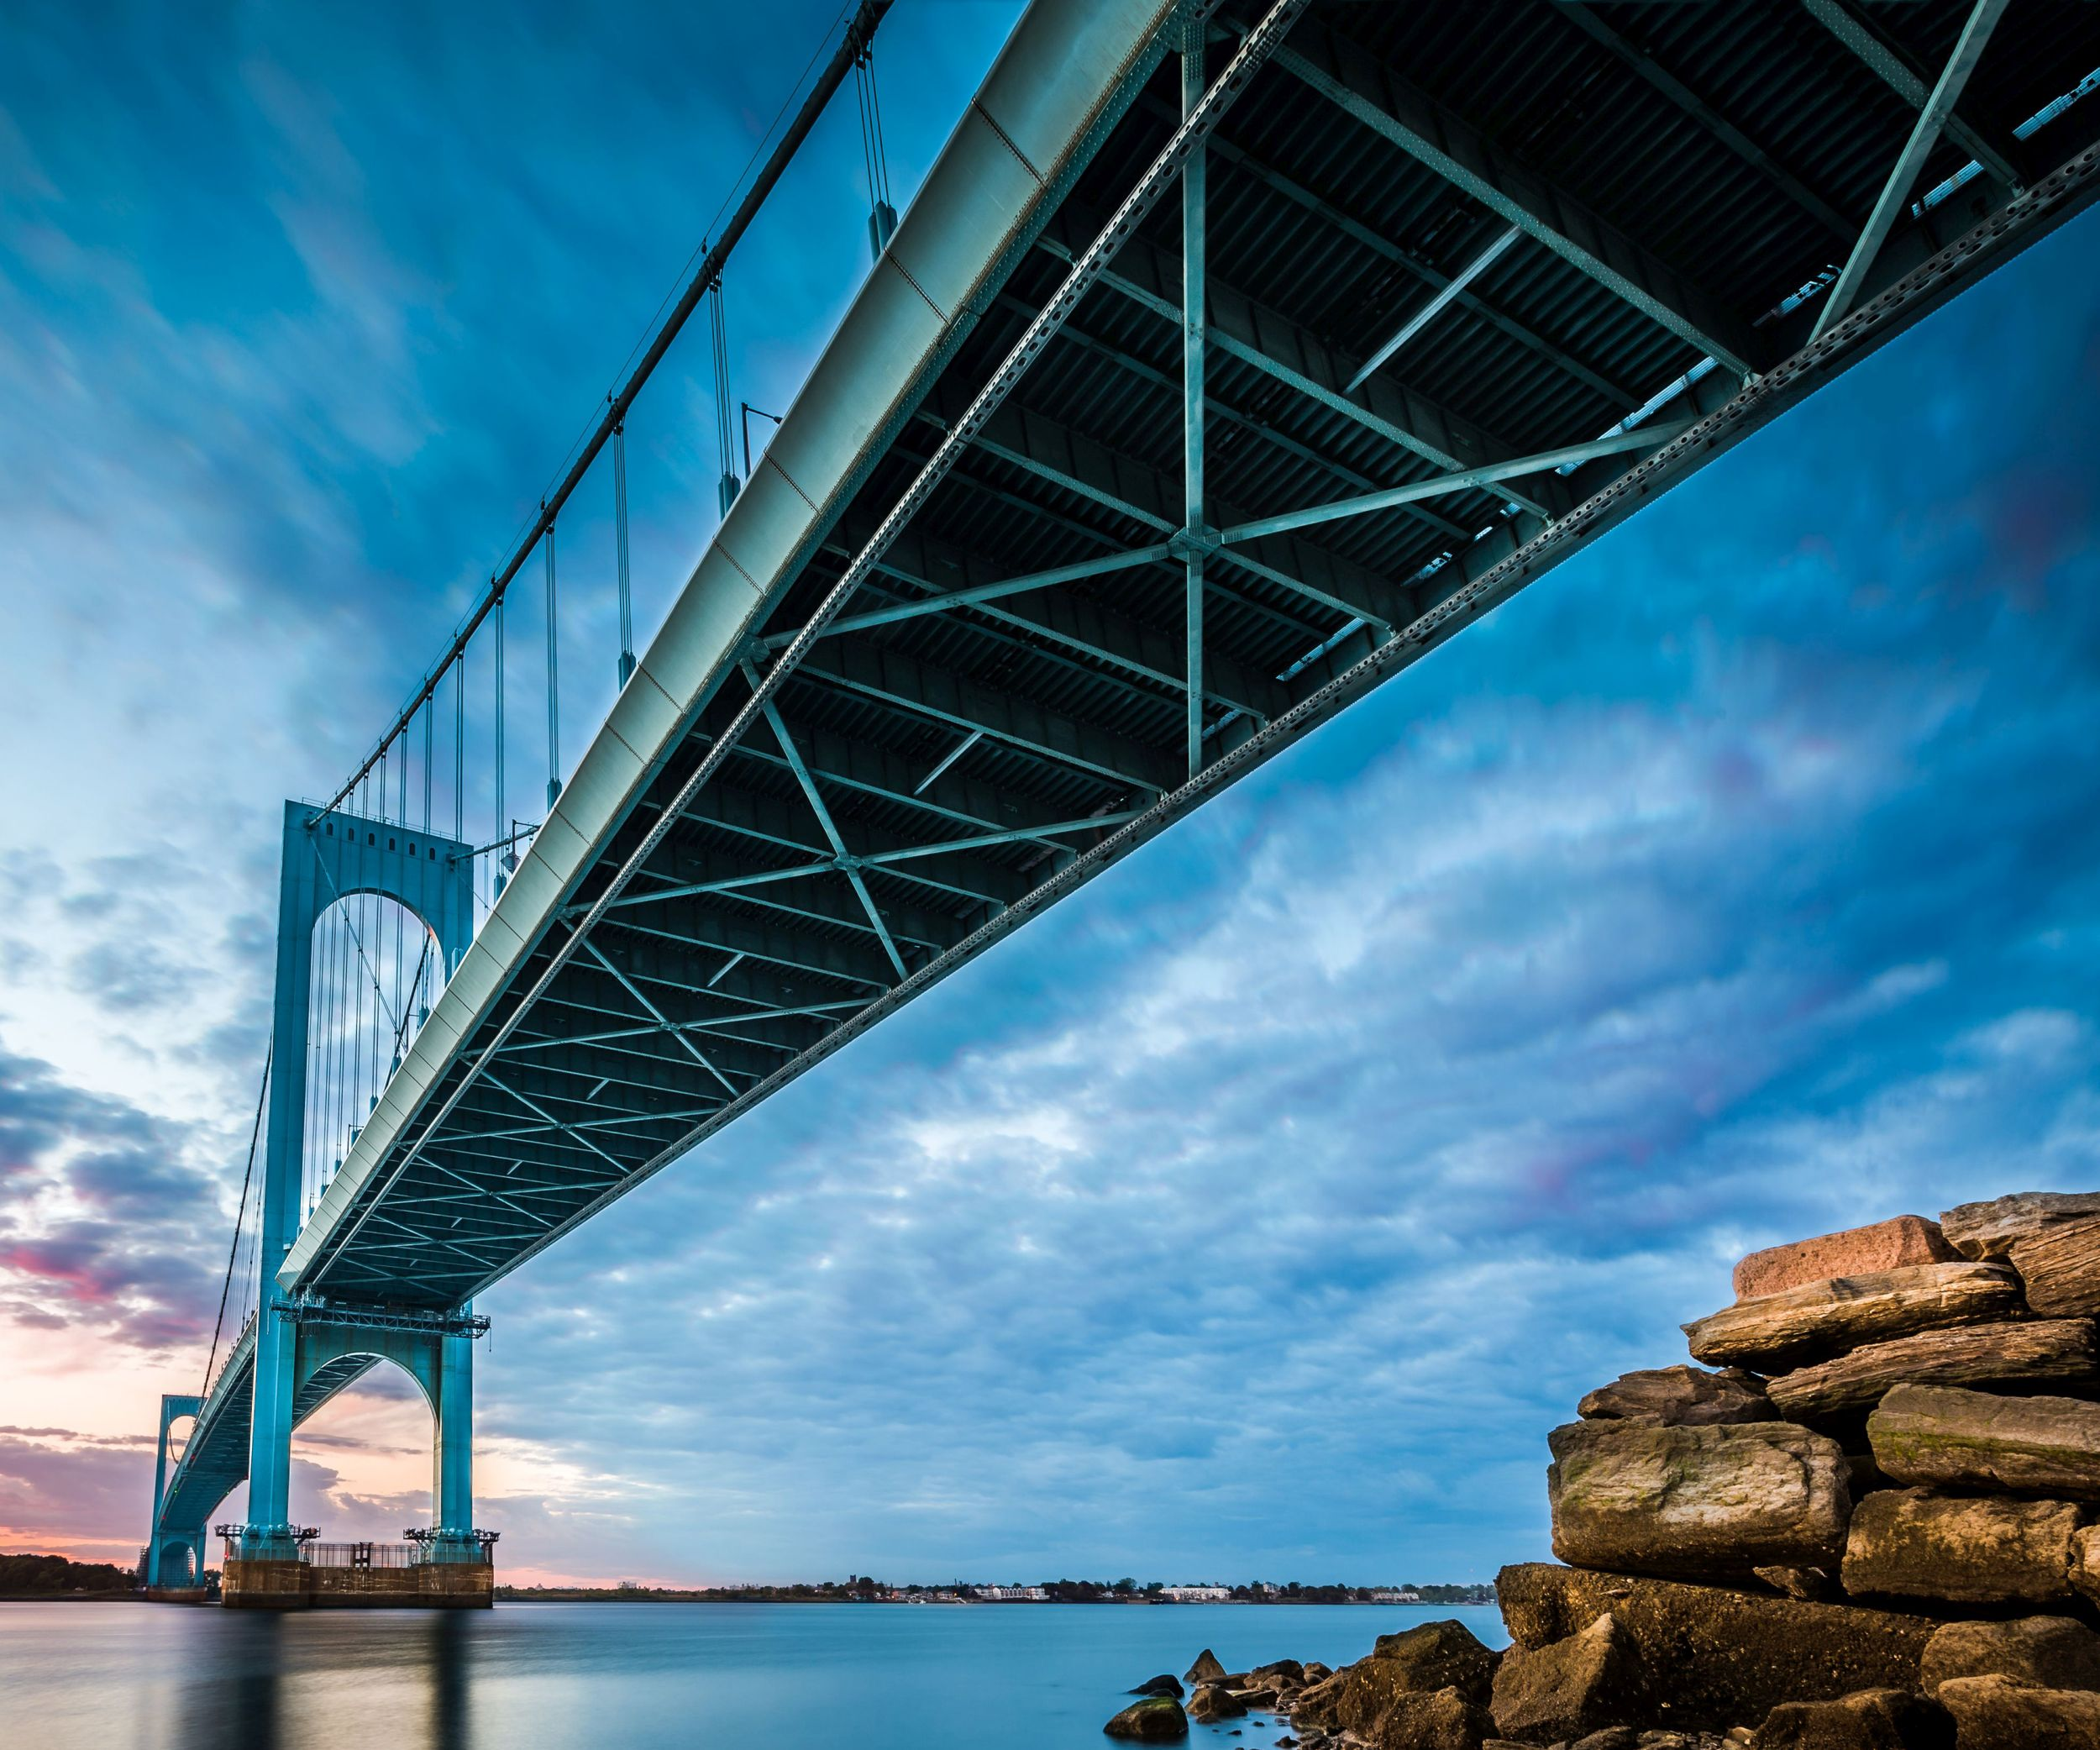 Whitestone Bridge in the Bronx, NY uses Tecnofire in its FRP wind fairings